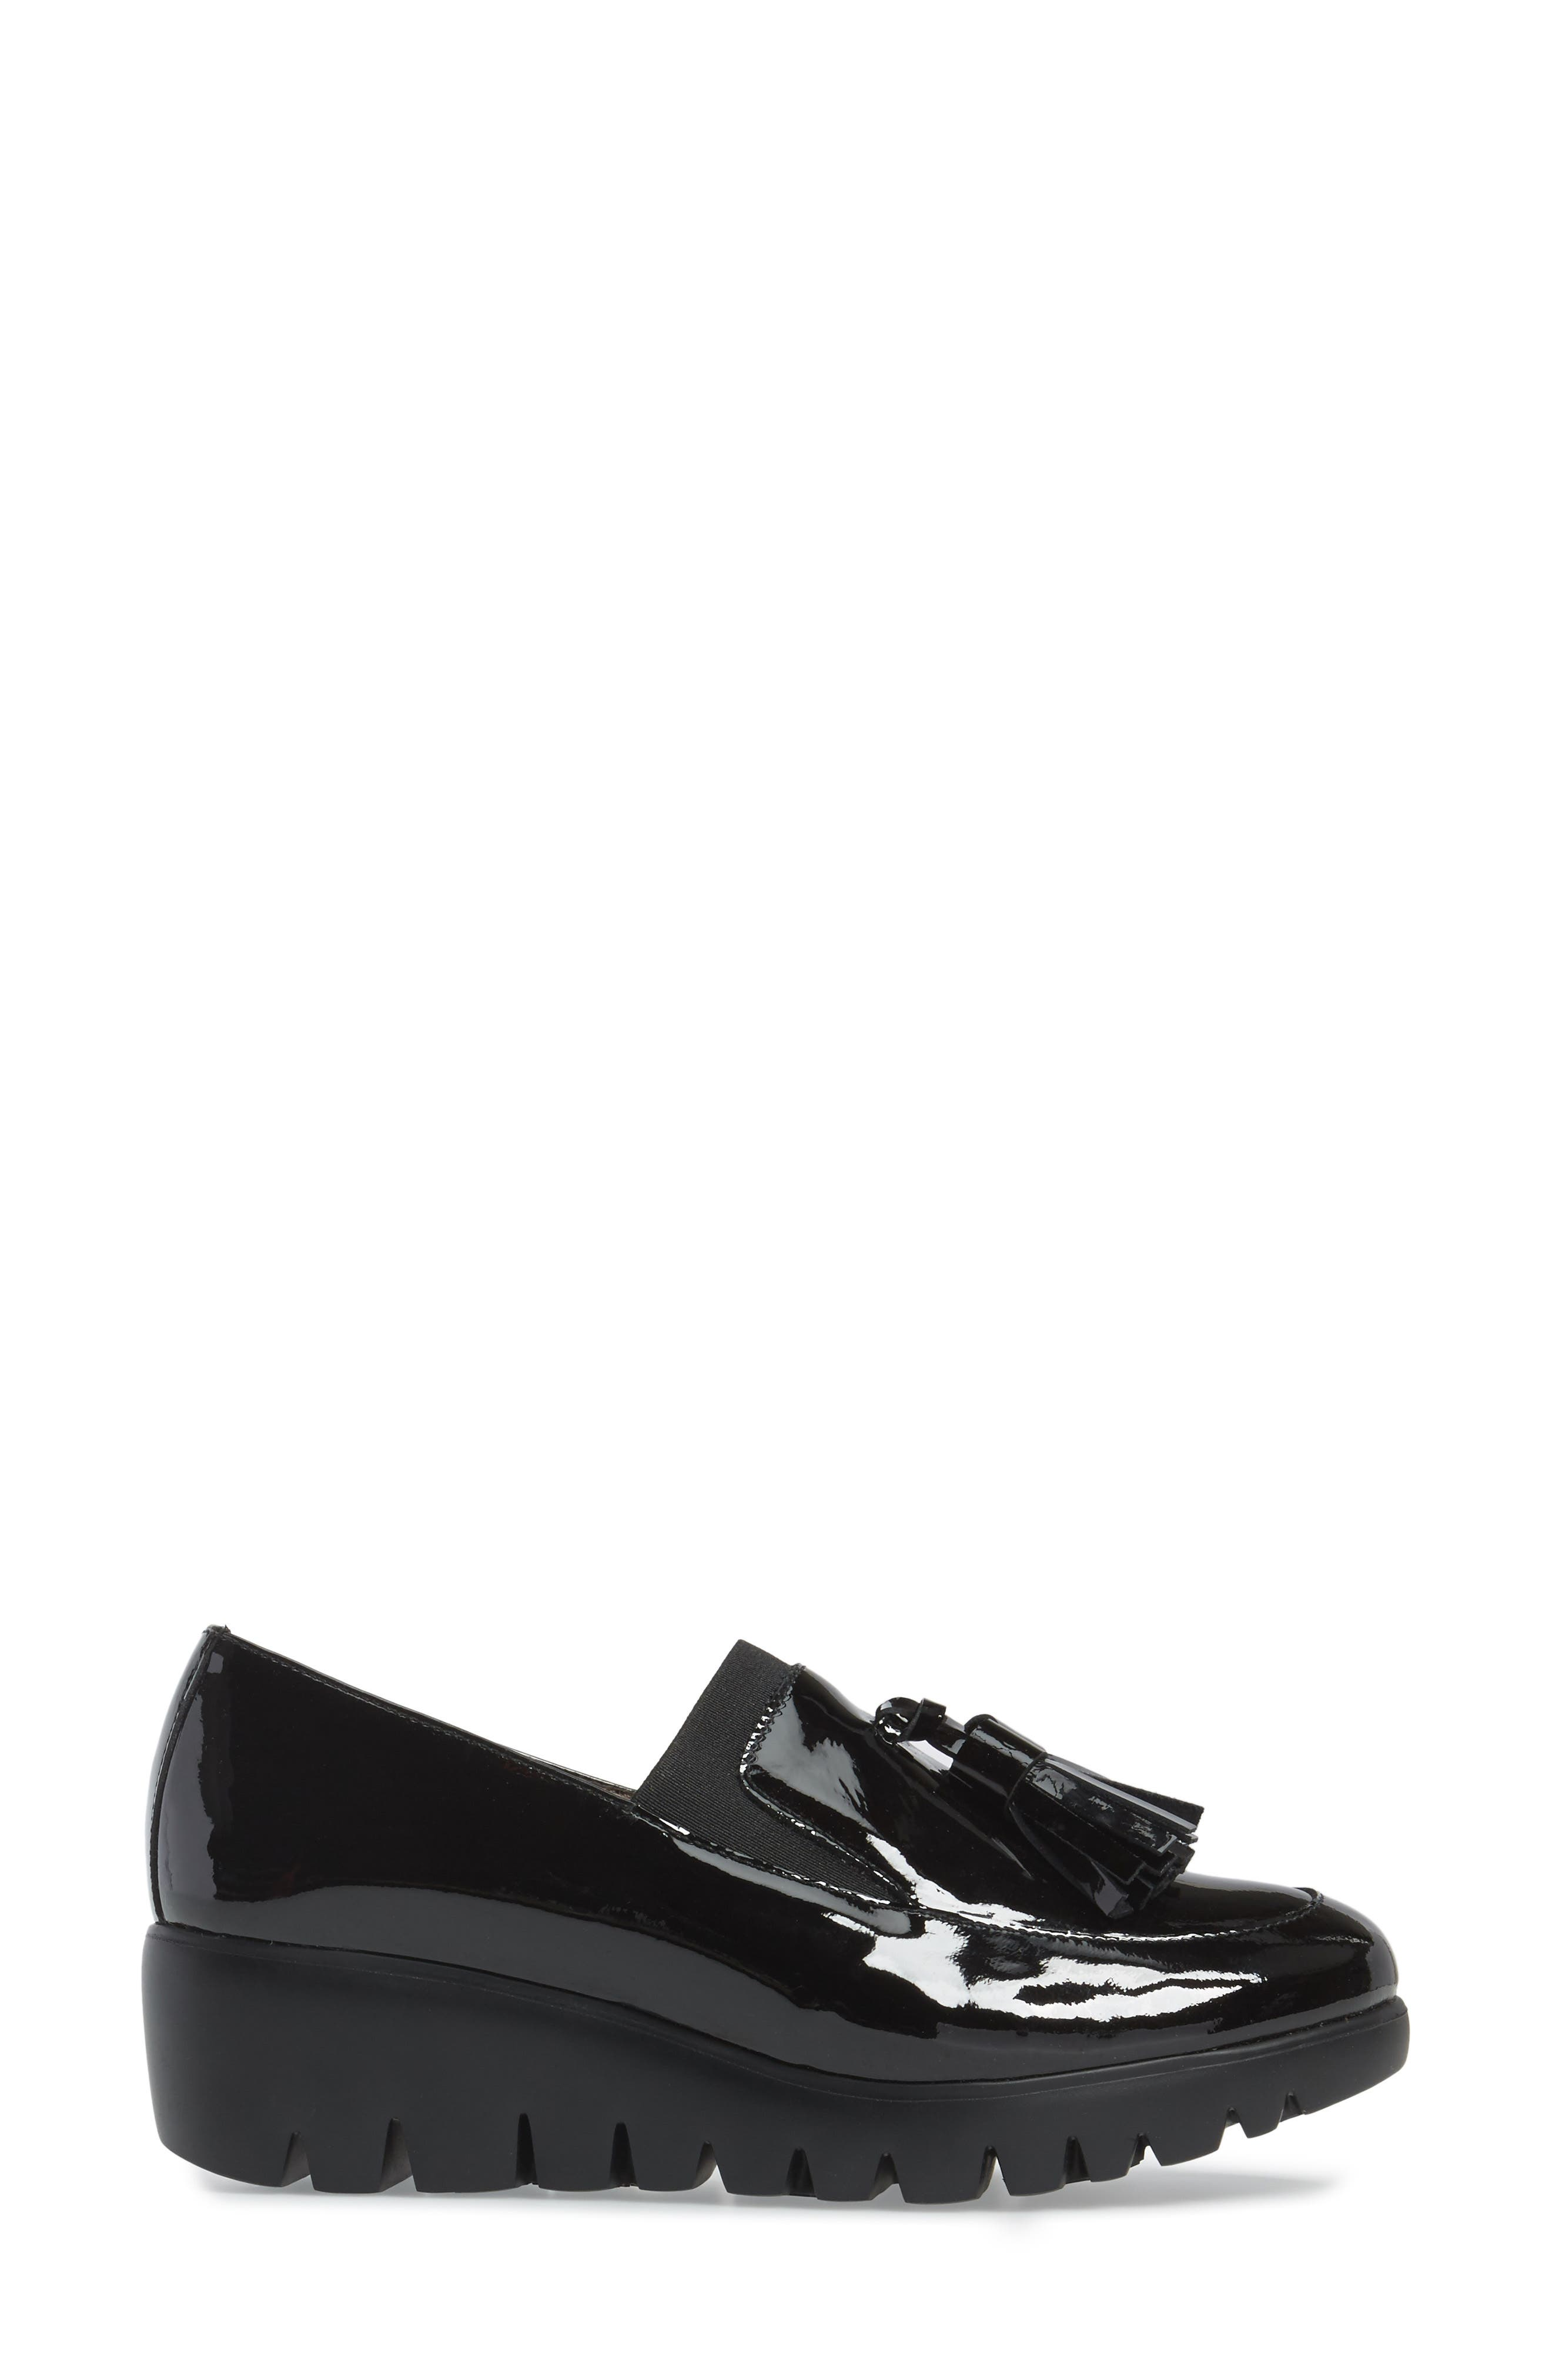 Talla Loafer Wedge,                             Alternate thumbnail 3, color,                             Black Patent Leather